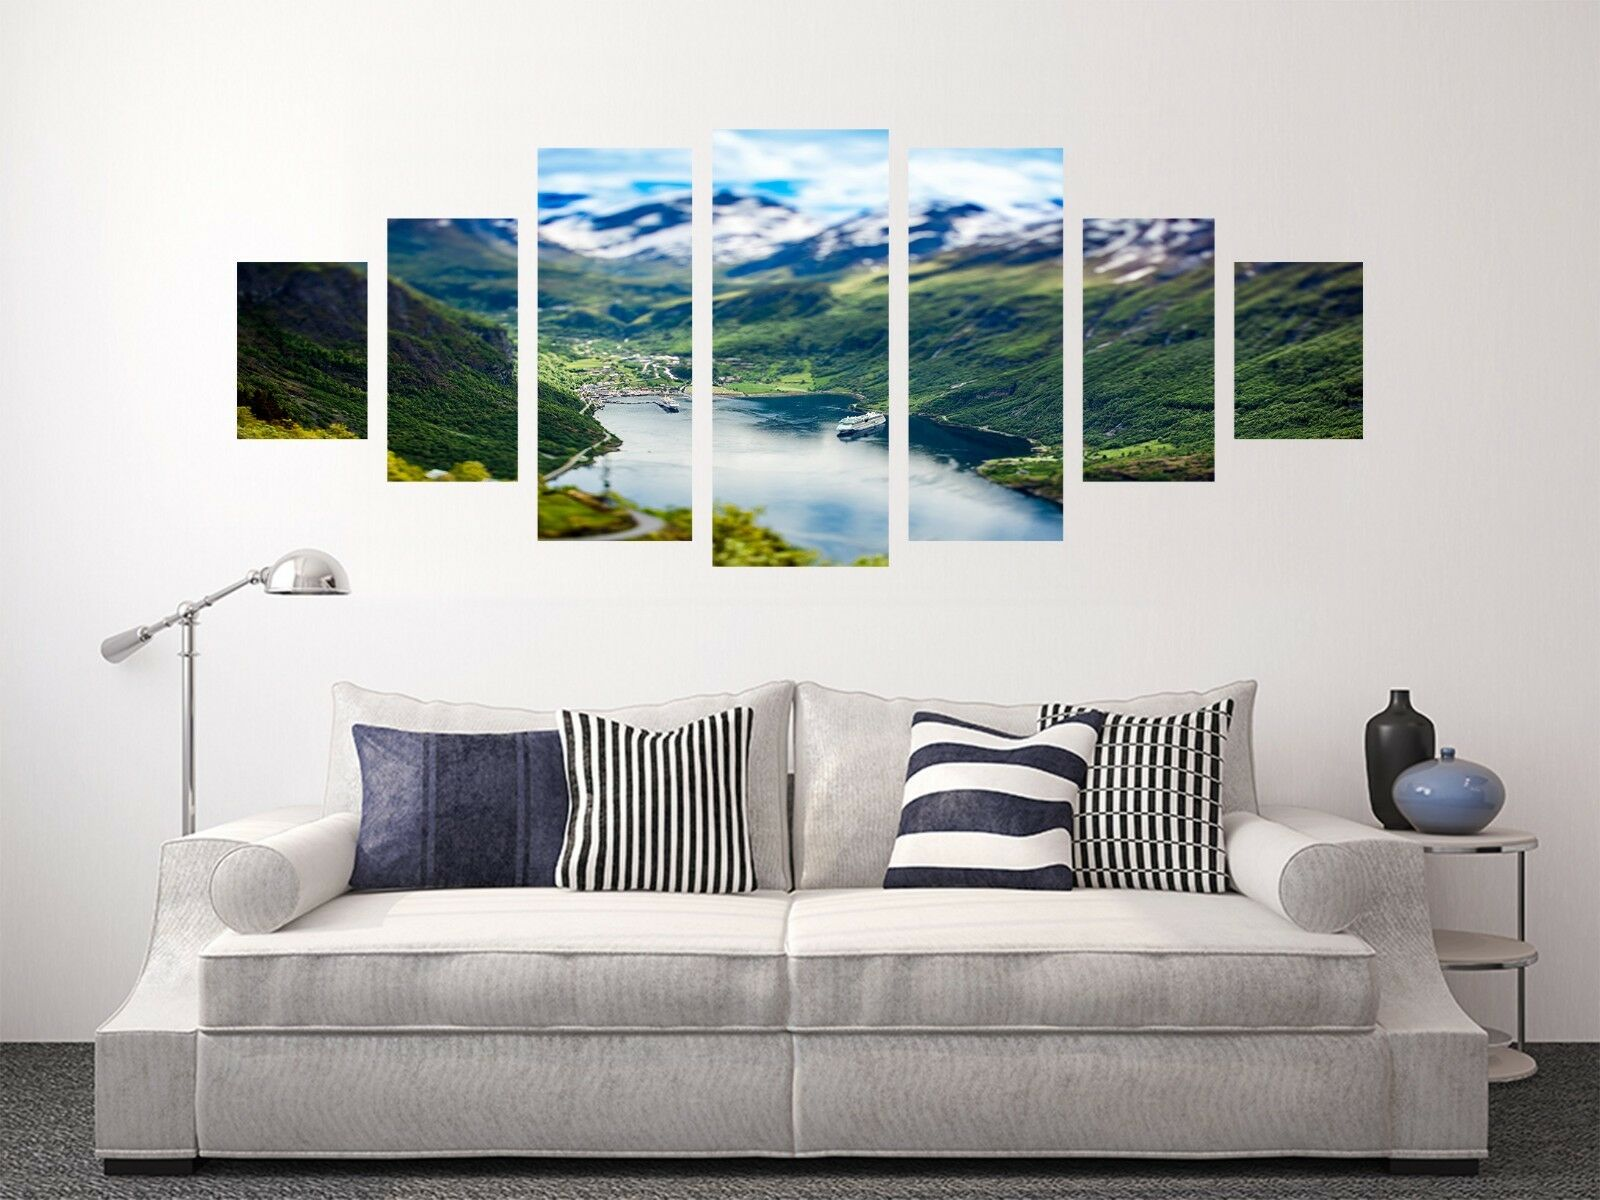 3D Hill River Natural 6 Unframed Print Wall Paper Decal Wall Deco Indoor AJ Wall